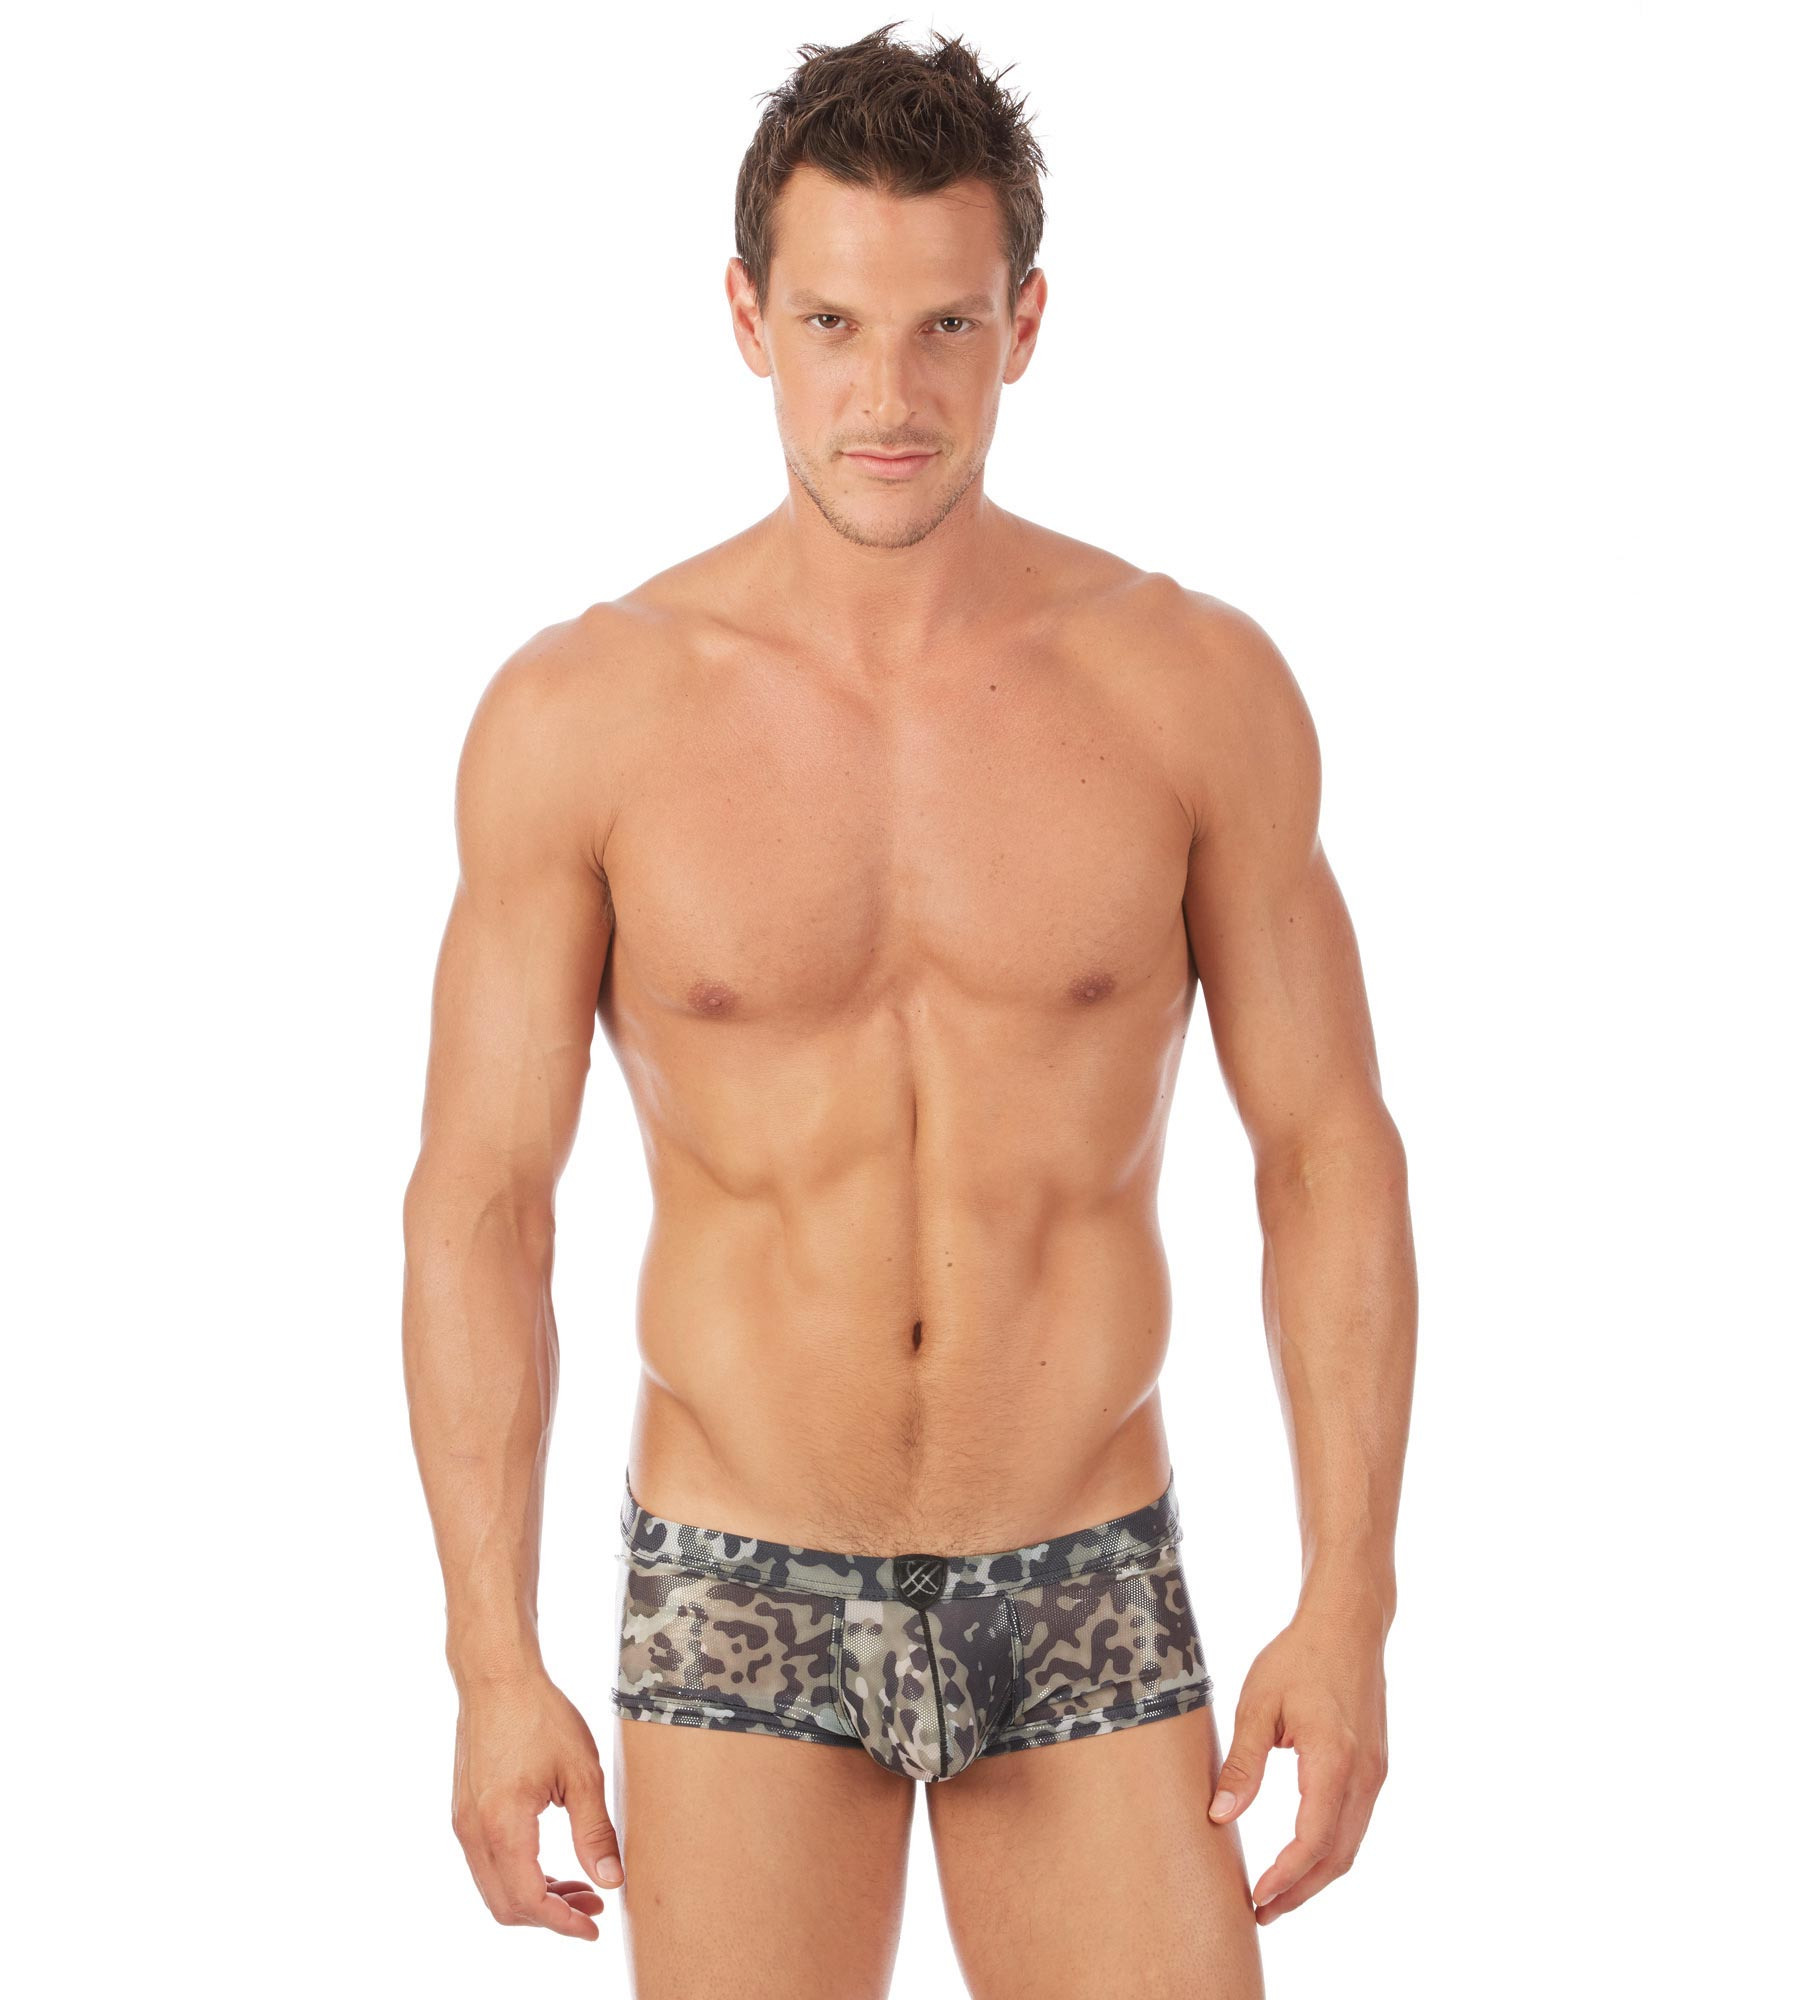 Wetlook camo boxer briefs 112305 Edmonton